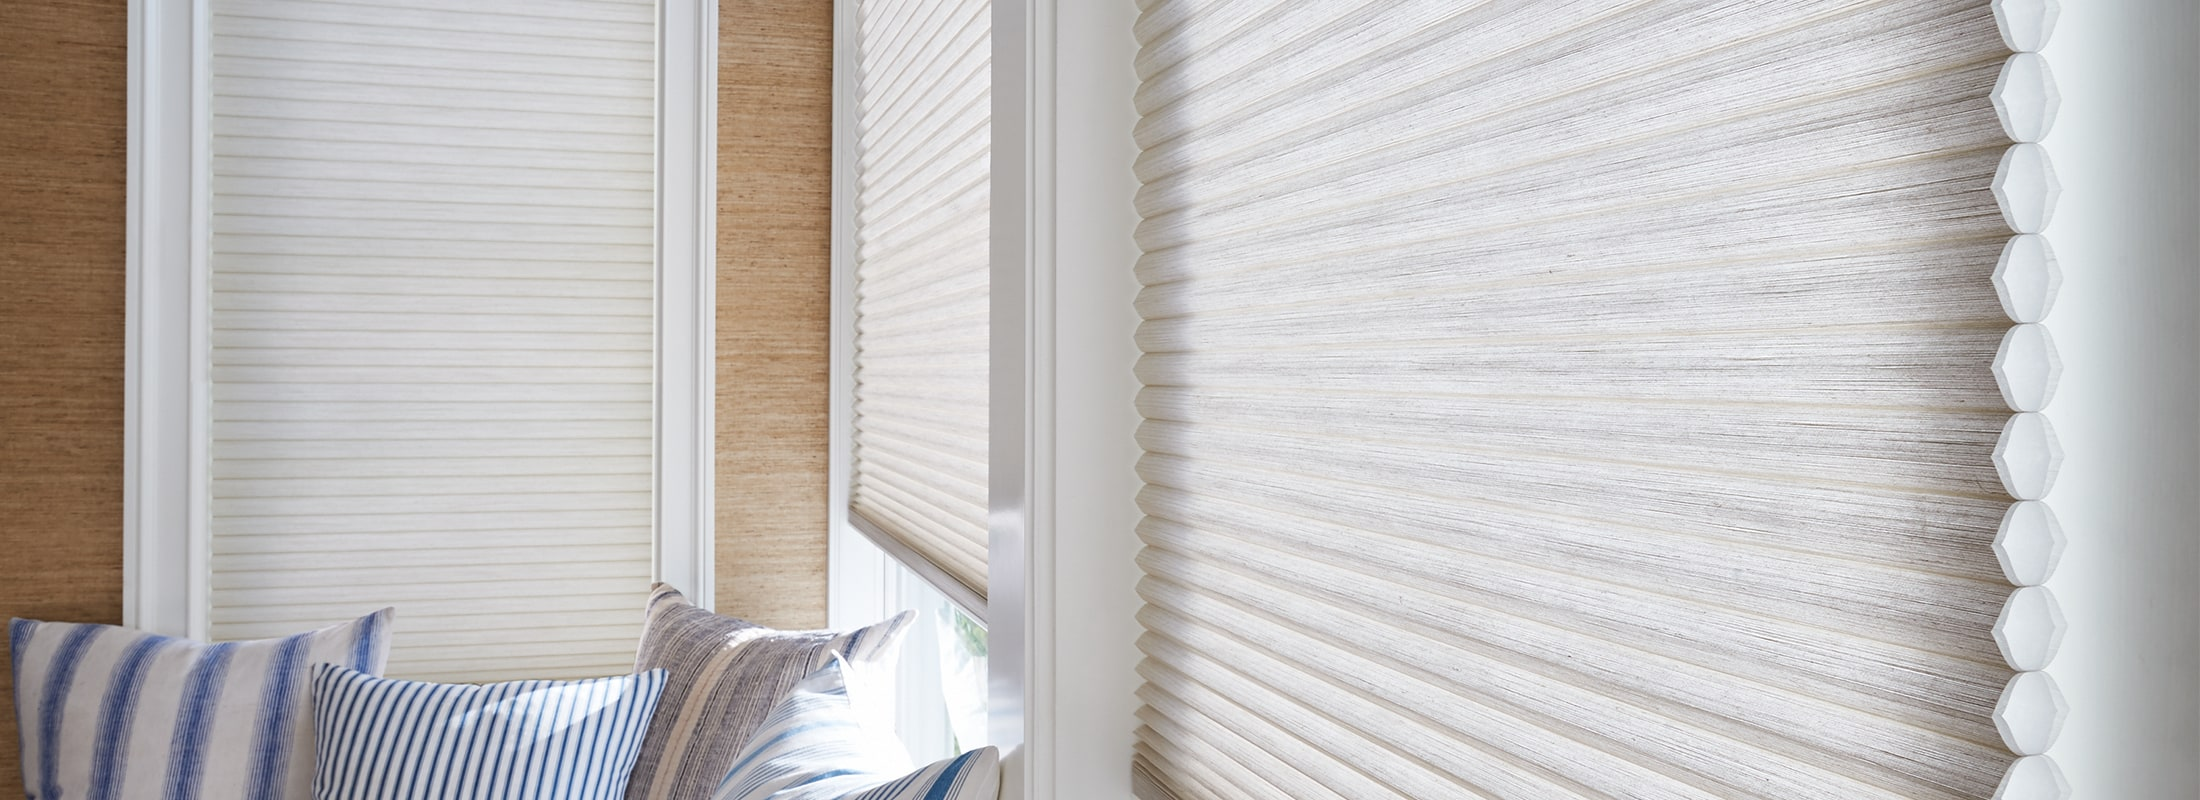 Cellular shades in Architella Alexa Desert Sands - Duette with Closeup